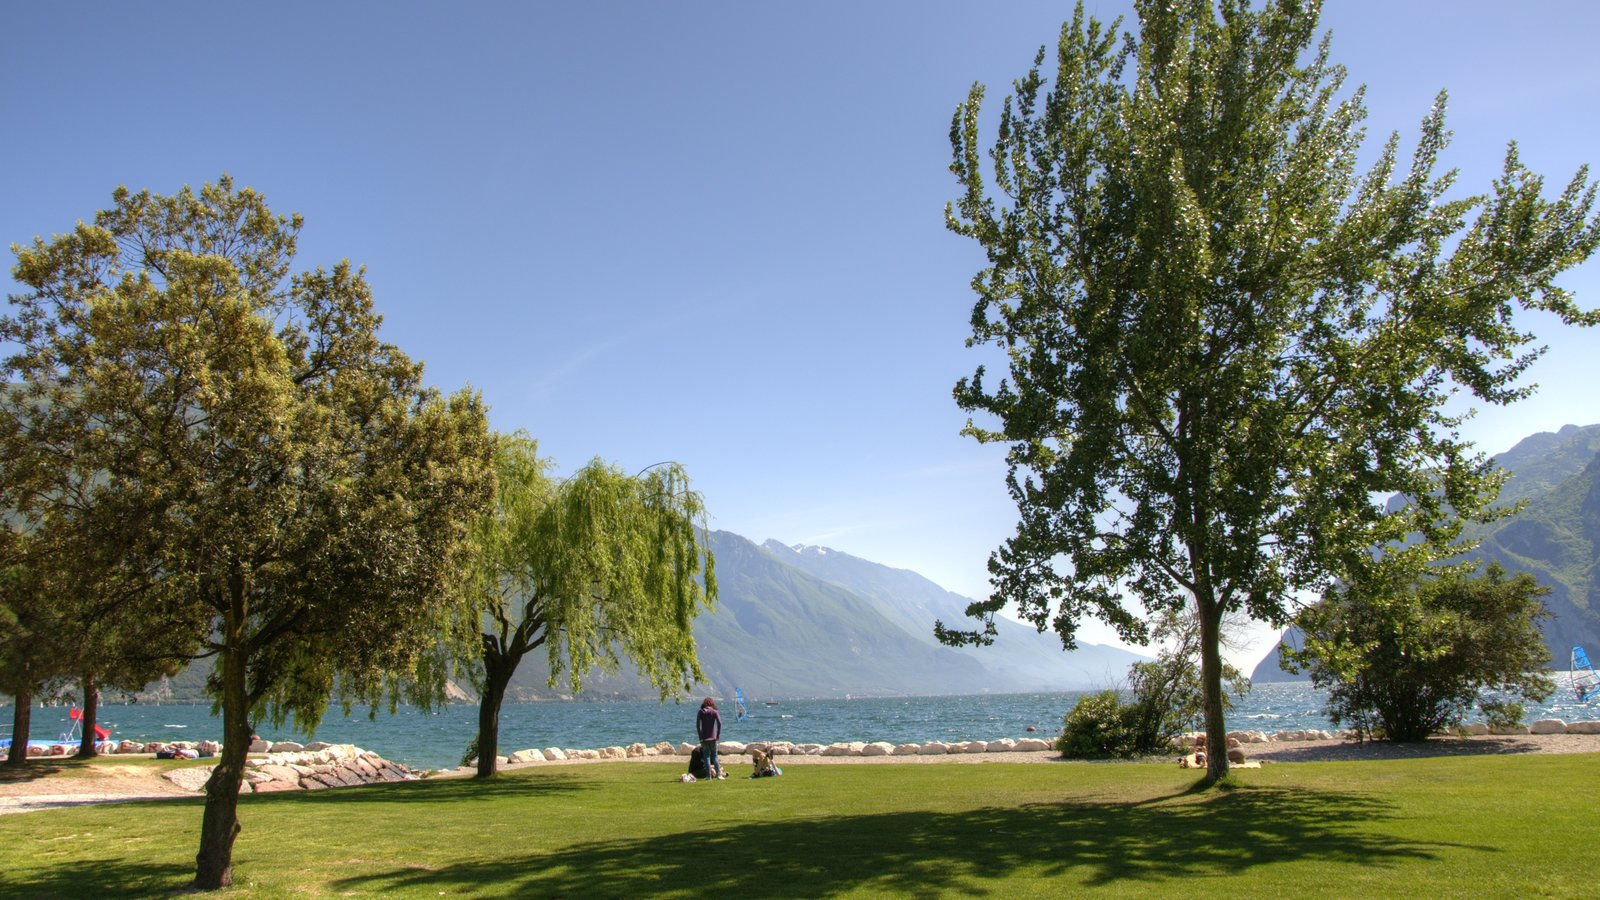 Riva del Garda featuring a lake or waterhole and a park